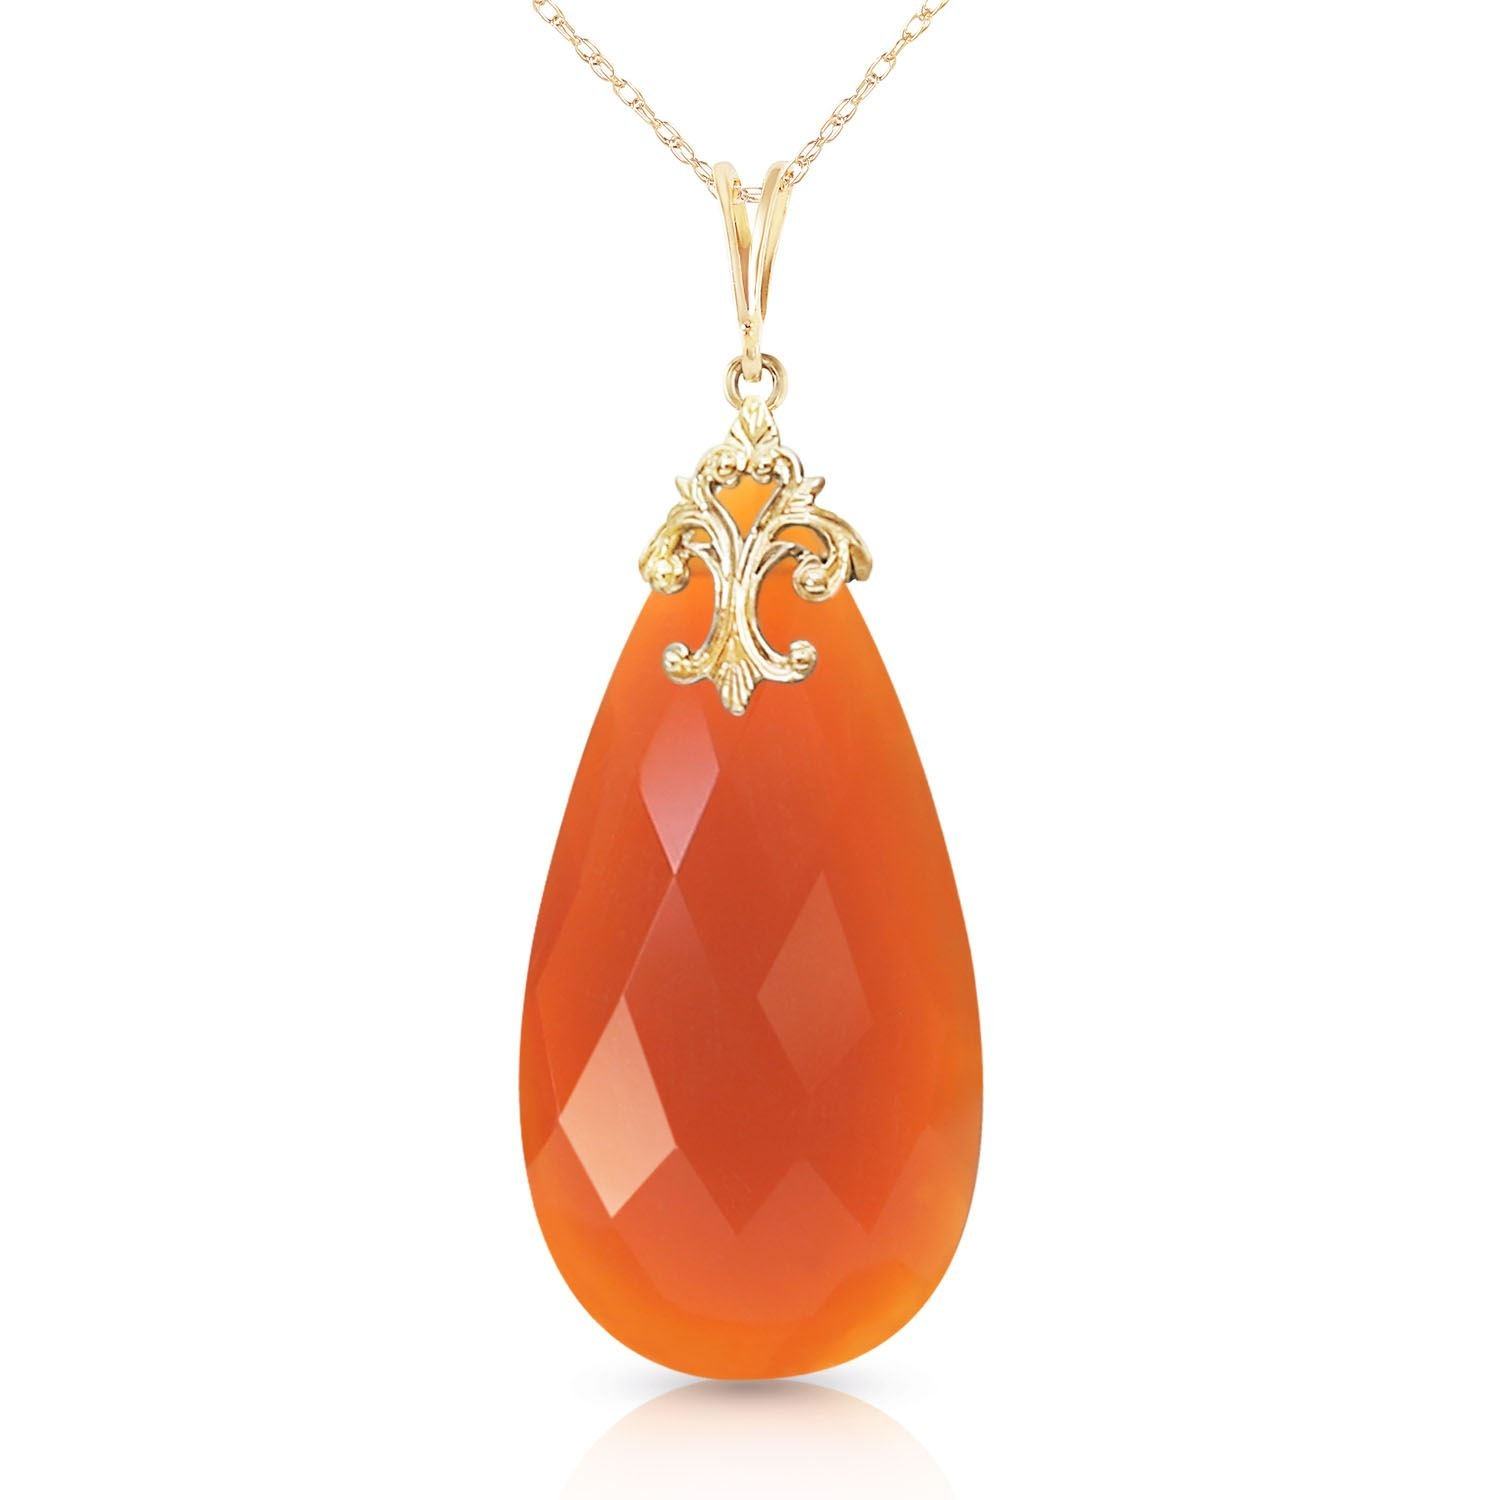 ALARRI 14K Solid Gold Necklace with Briolette 31x16 mm Reddish Orange Chalcedony with 22 Inch Chain Length